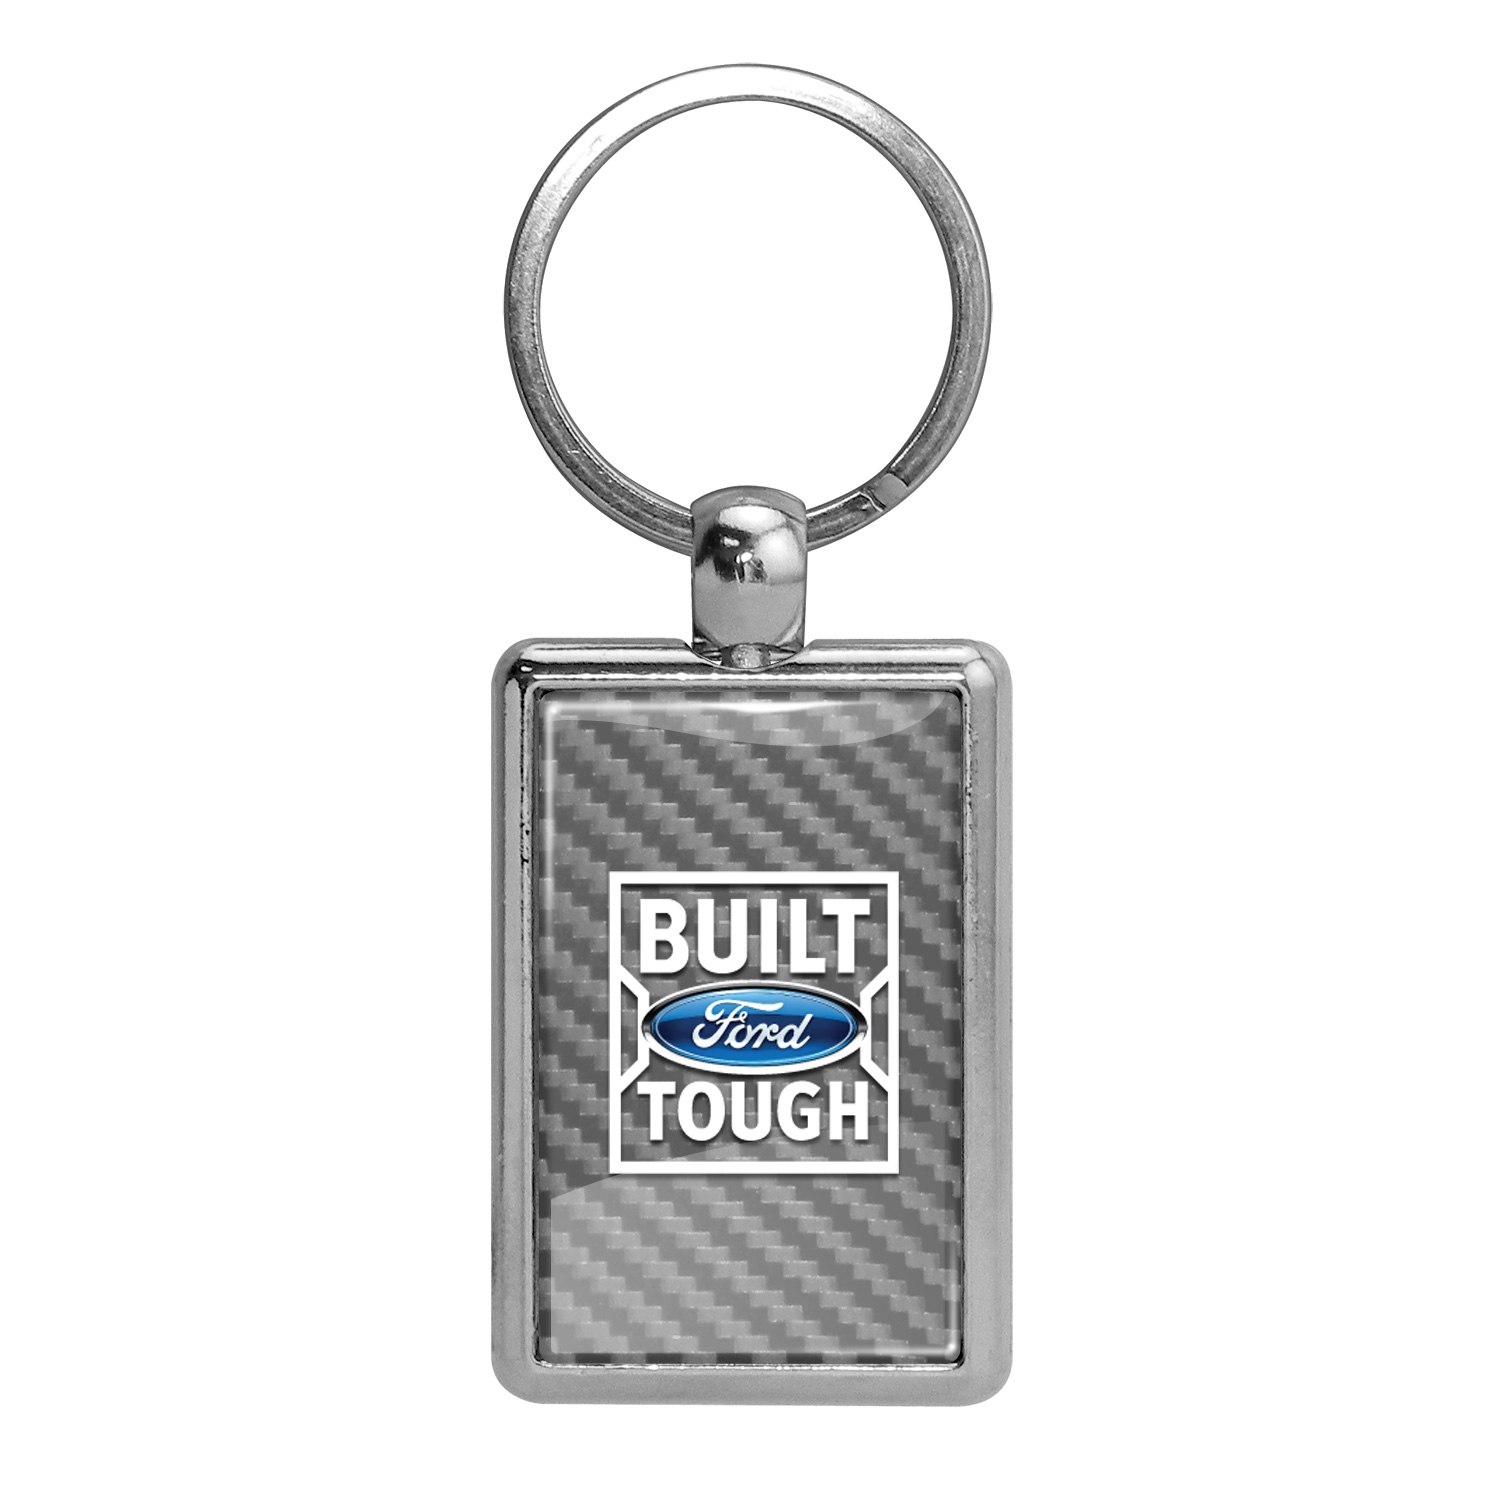 Ford Built Ford Tough Silver Carbon Fiber Backing Brush Rectangle Metal Key Chain